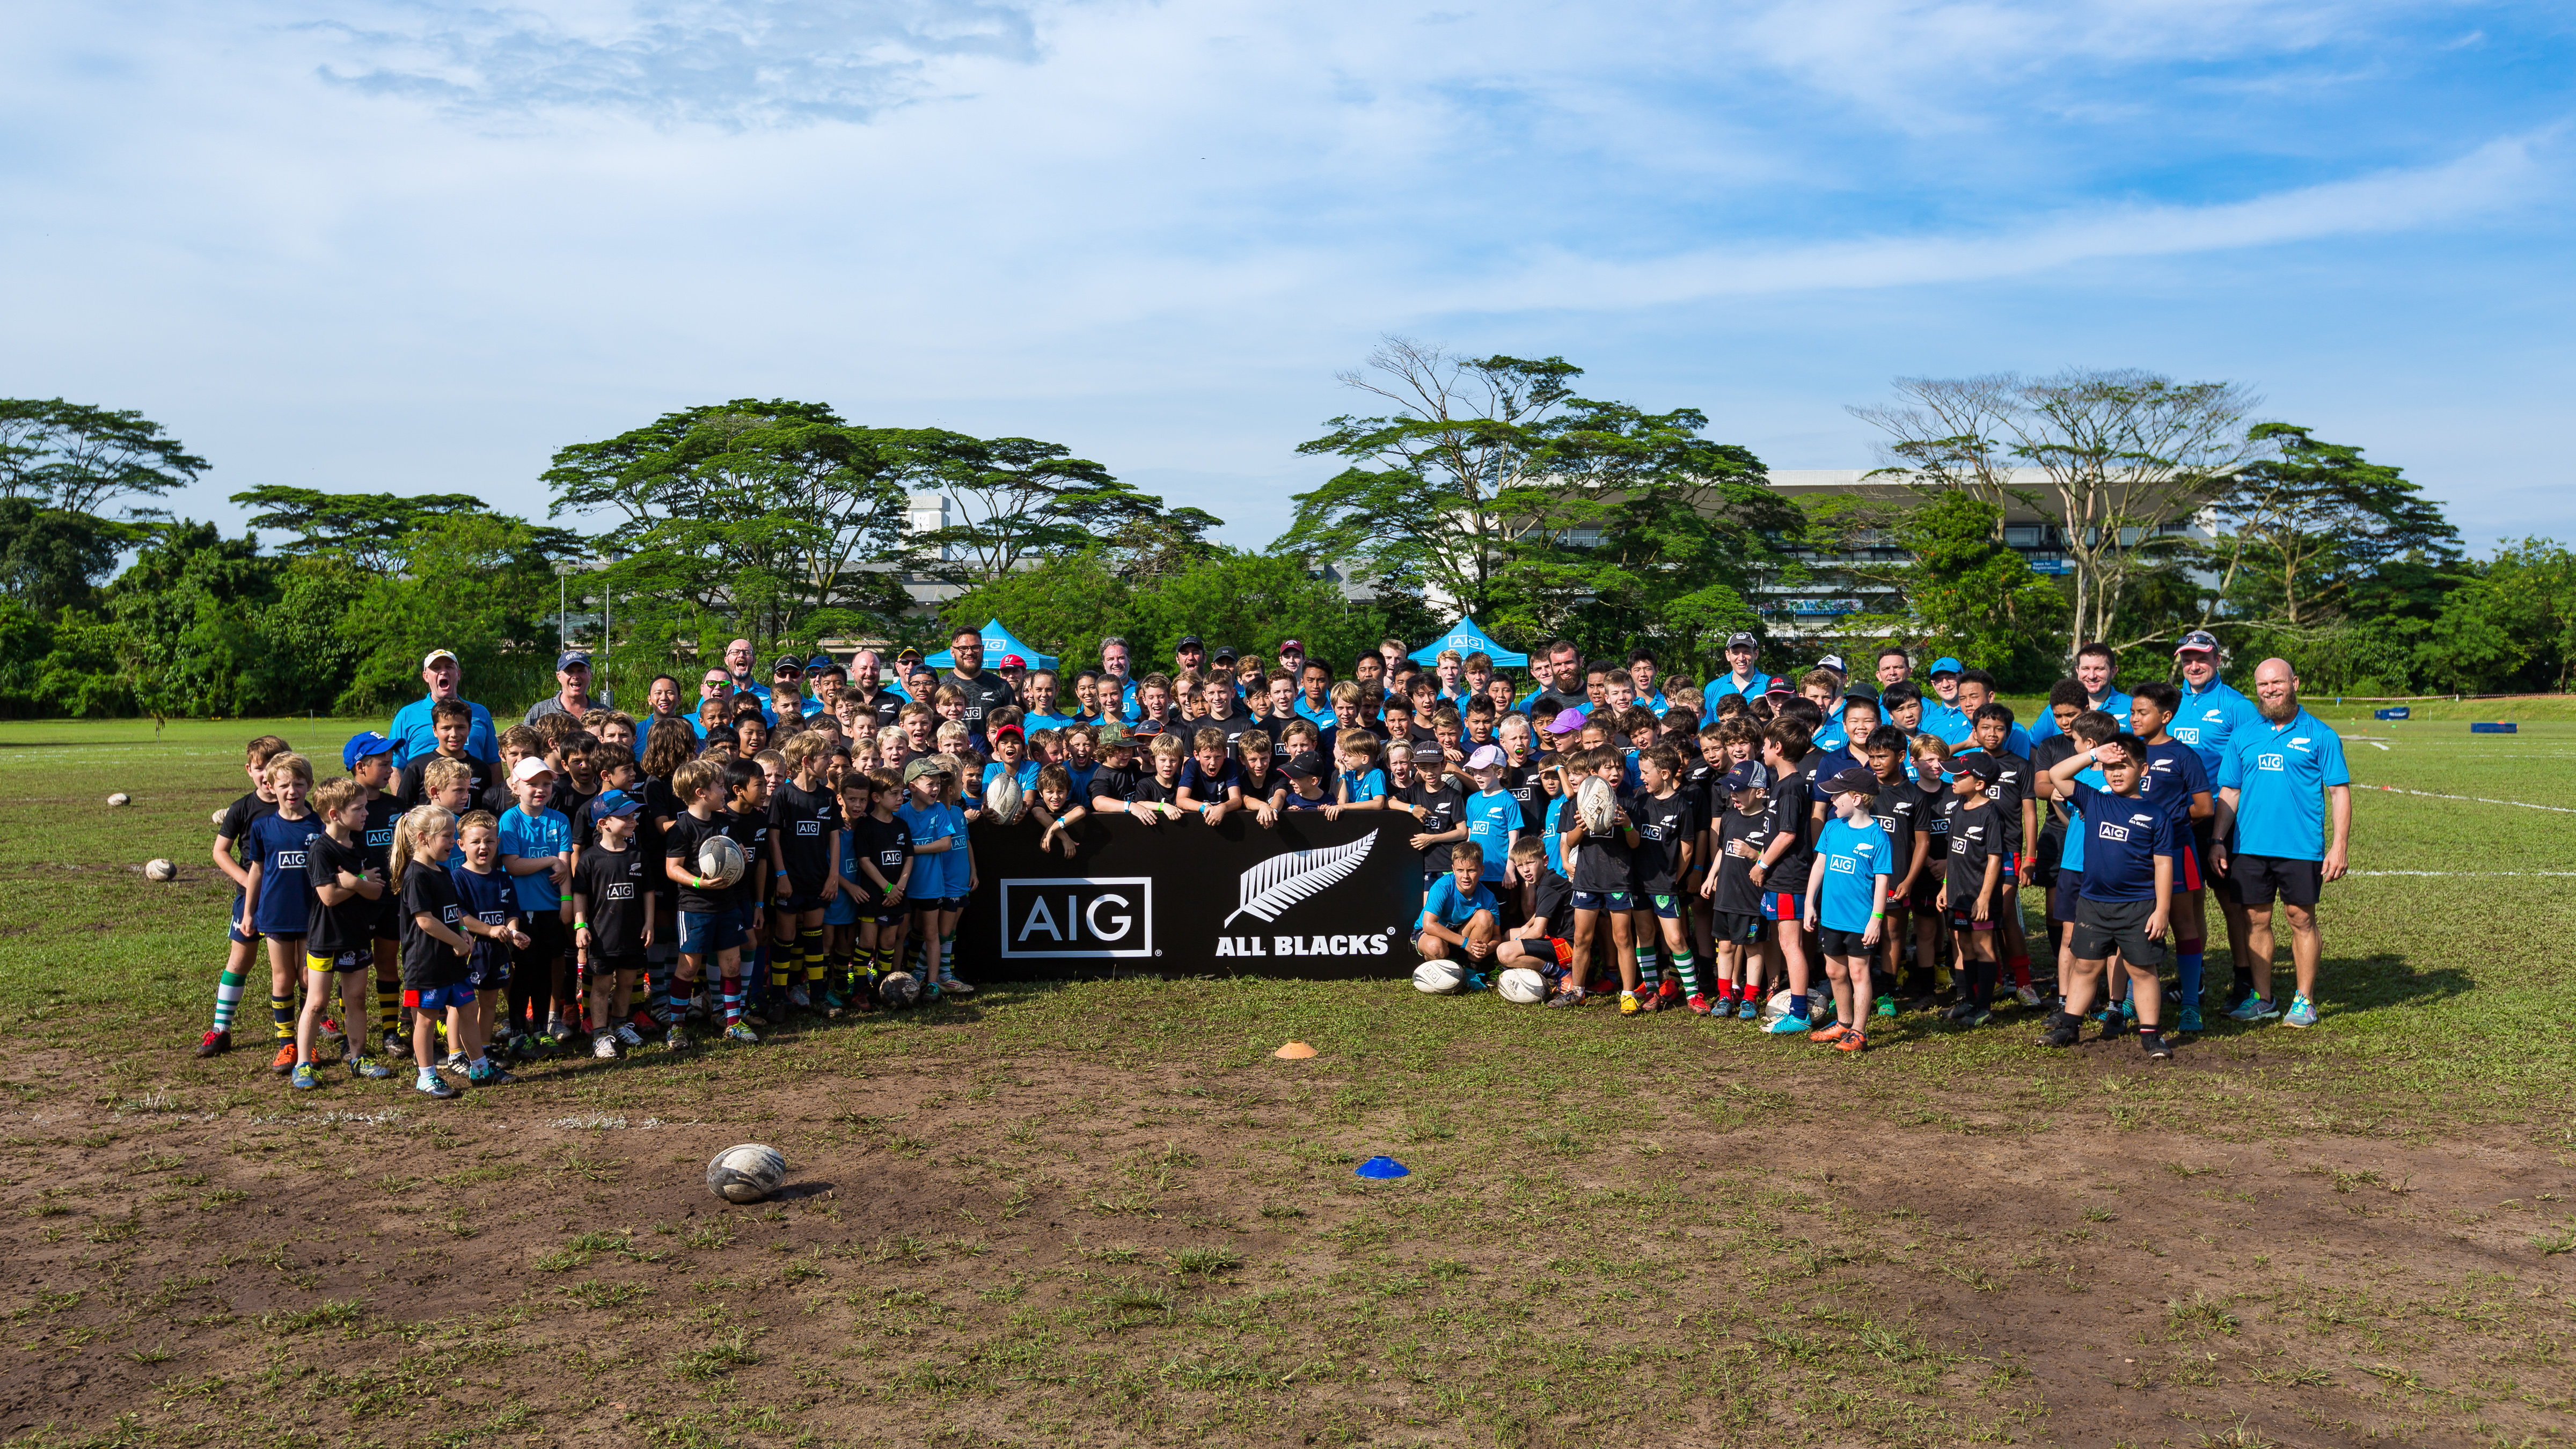 AIG Singapore welcomed All Blacks players Tim Perry, Angus Ta'avao and Liam Coltman to the Tanglin Rugby Club Pitch for a grassroots rugby training.